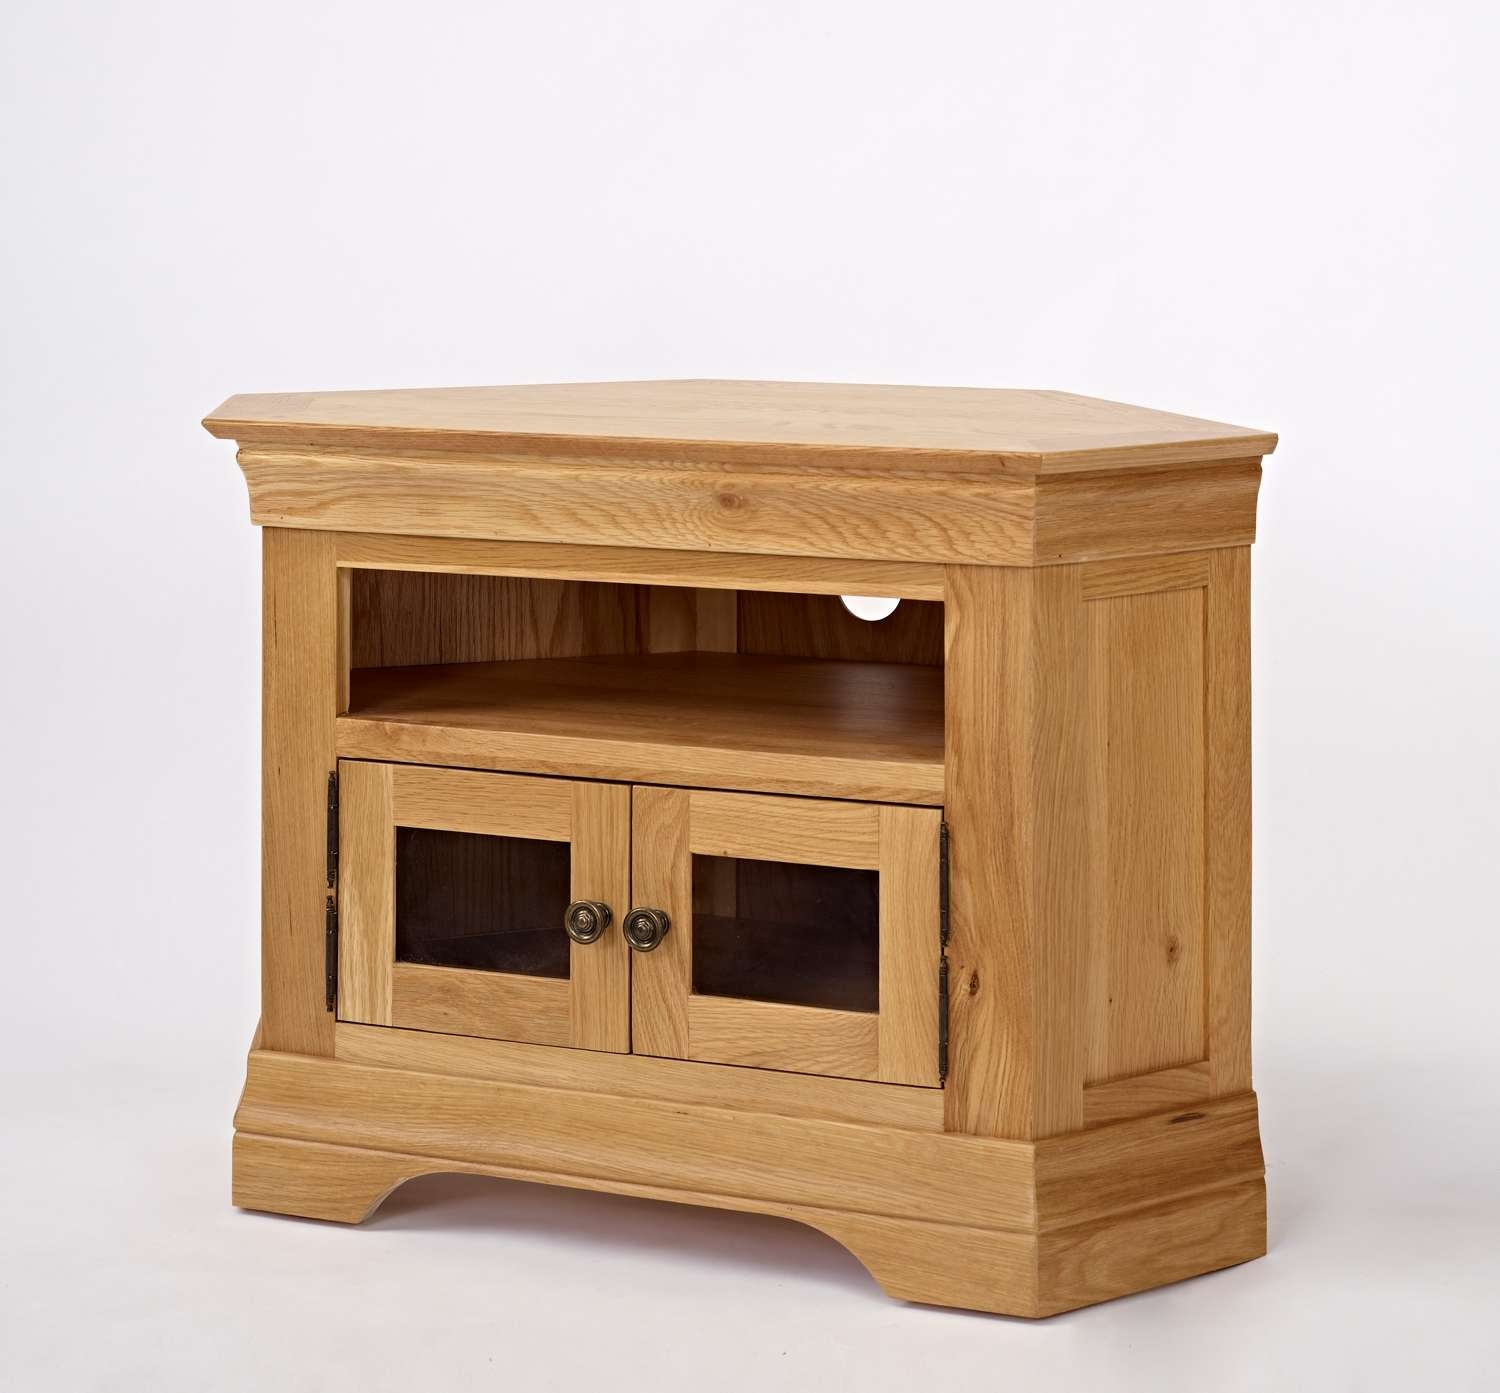 French Modern Oak Corner Tv Unit | Hampshire Furniture For Modern Oak Tv Stands (View 2 of 15)